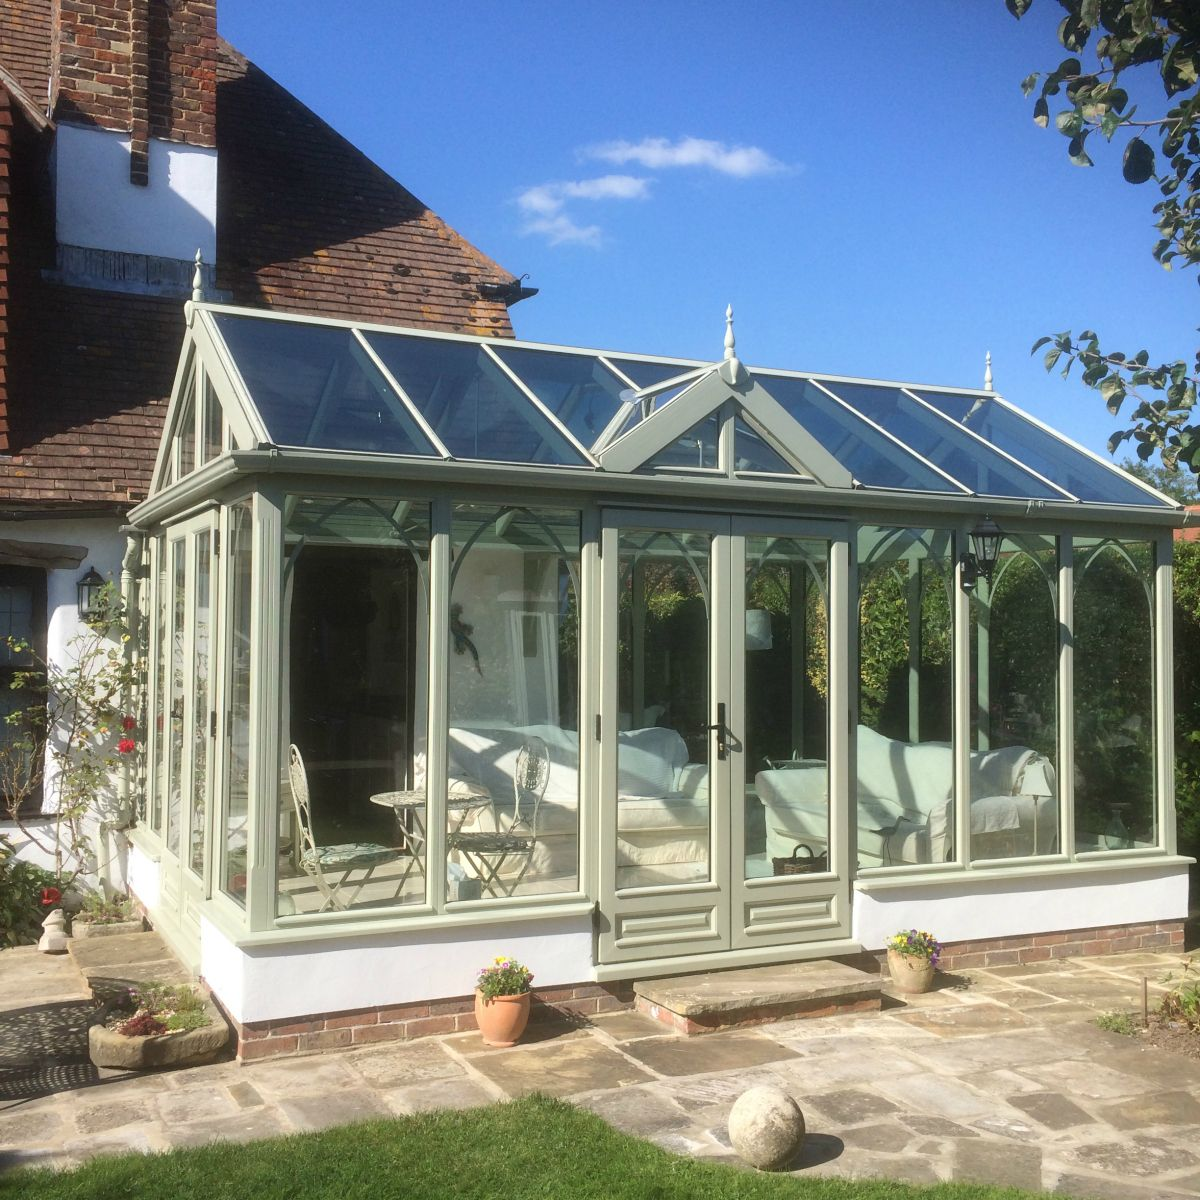 New Conservatory Painted In Heritage Green With Self Cleaning Soft Coated Aqua Blue High Performance Sol Glass Conservatory Roof Glass Conservatory Orangery